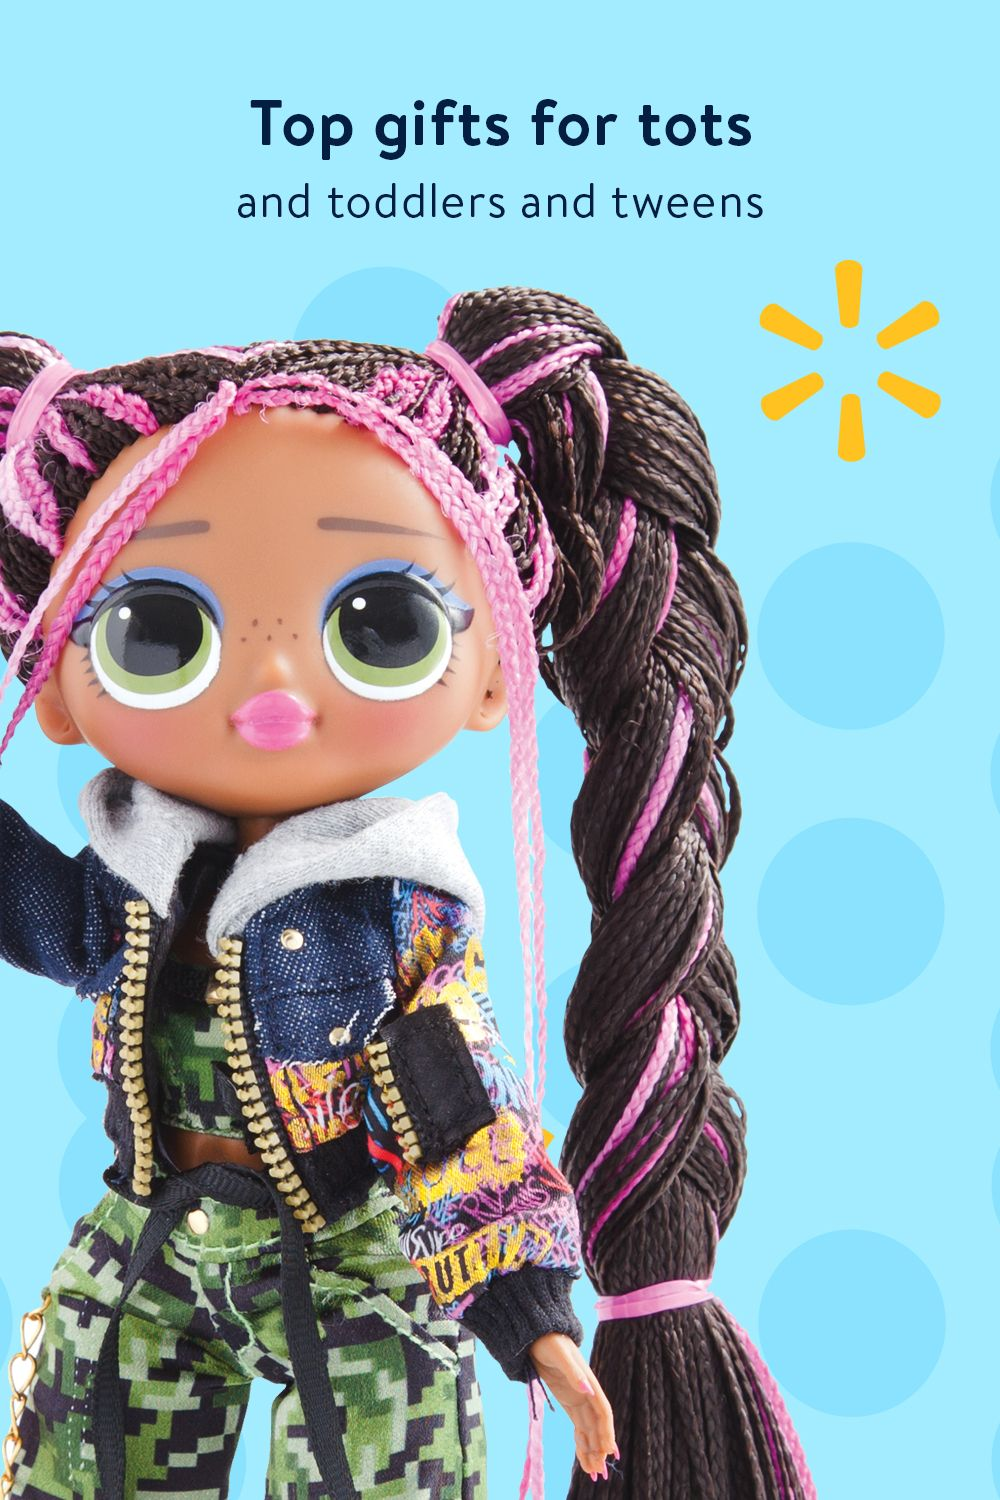 OMG Remix Honeylicious Fashion Doll LOL Surprise 25 Surprises with Music NEW!